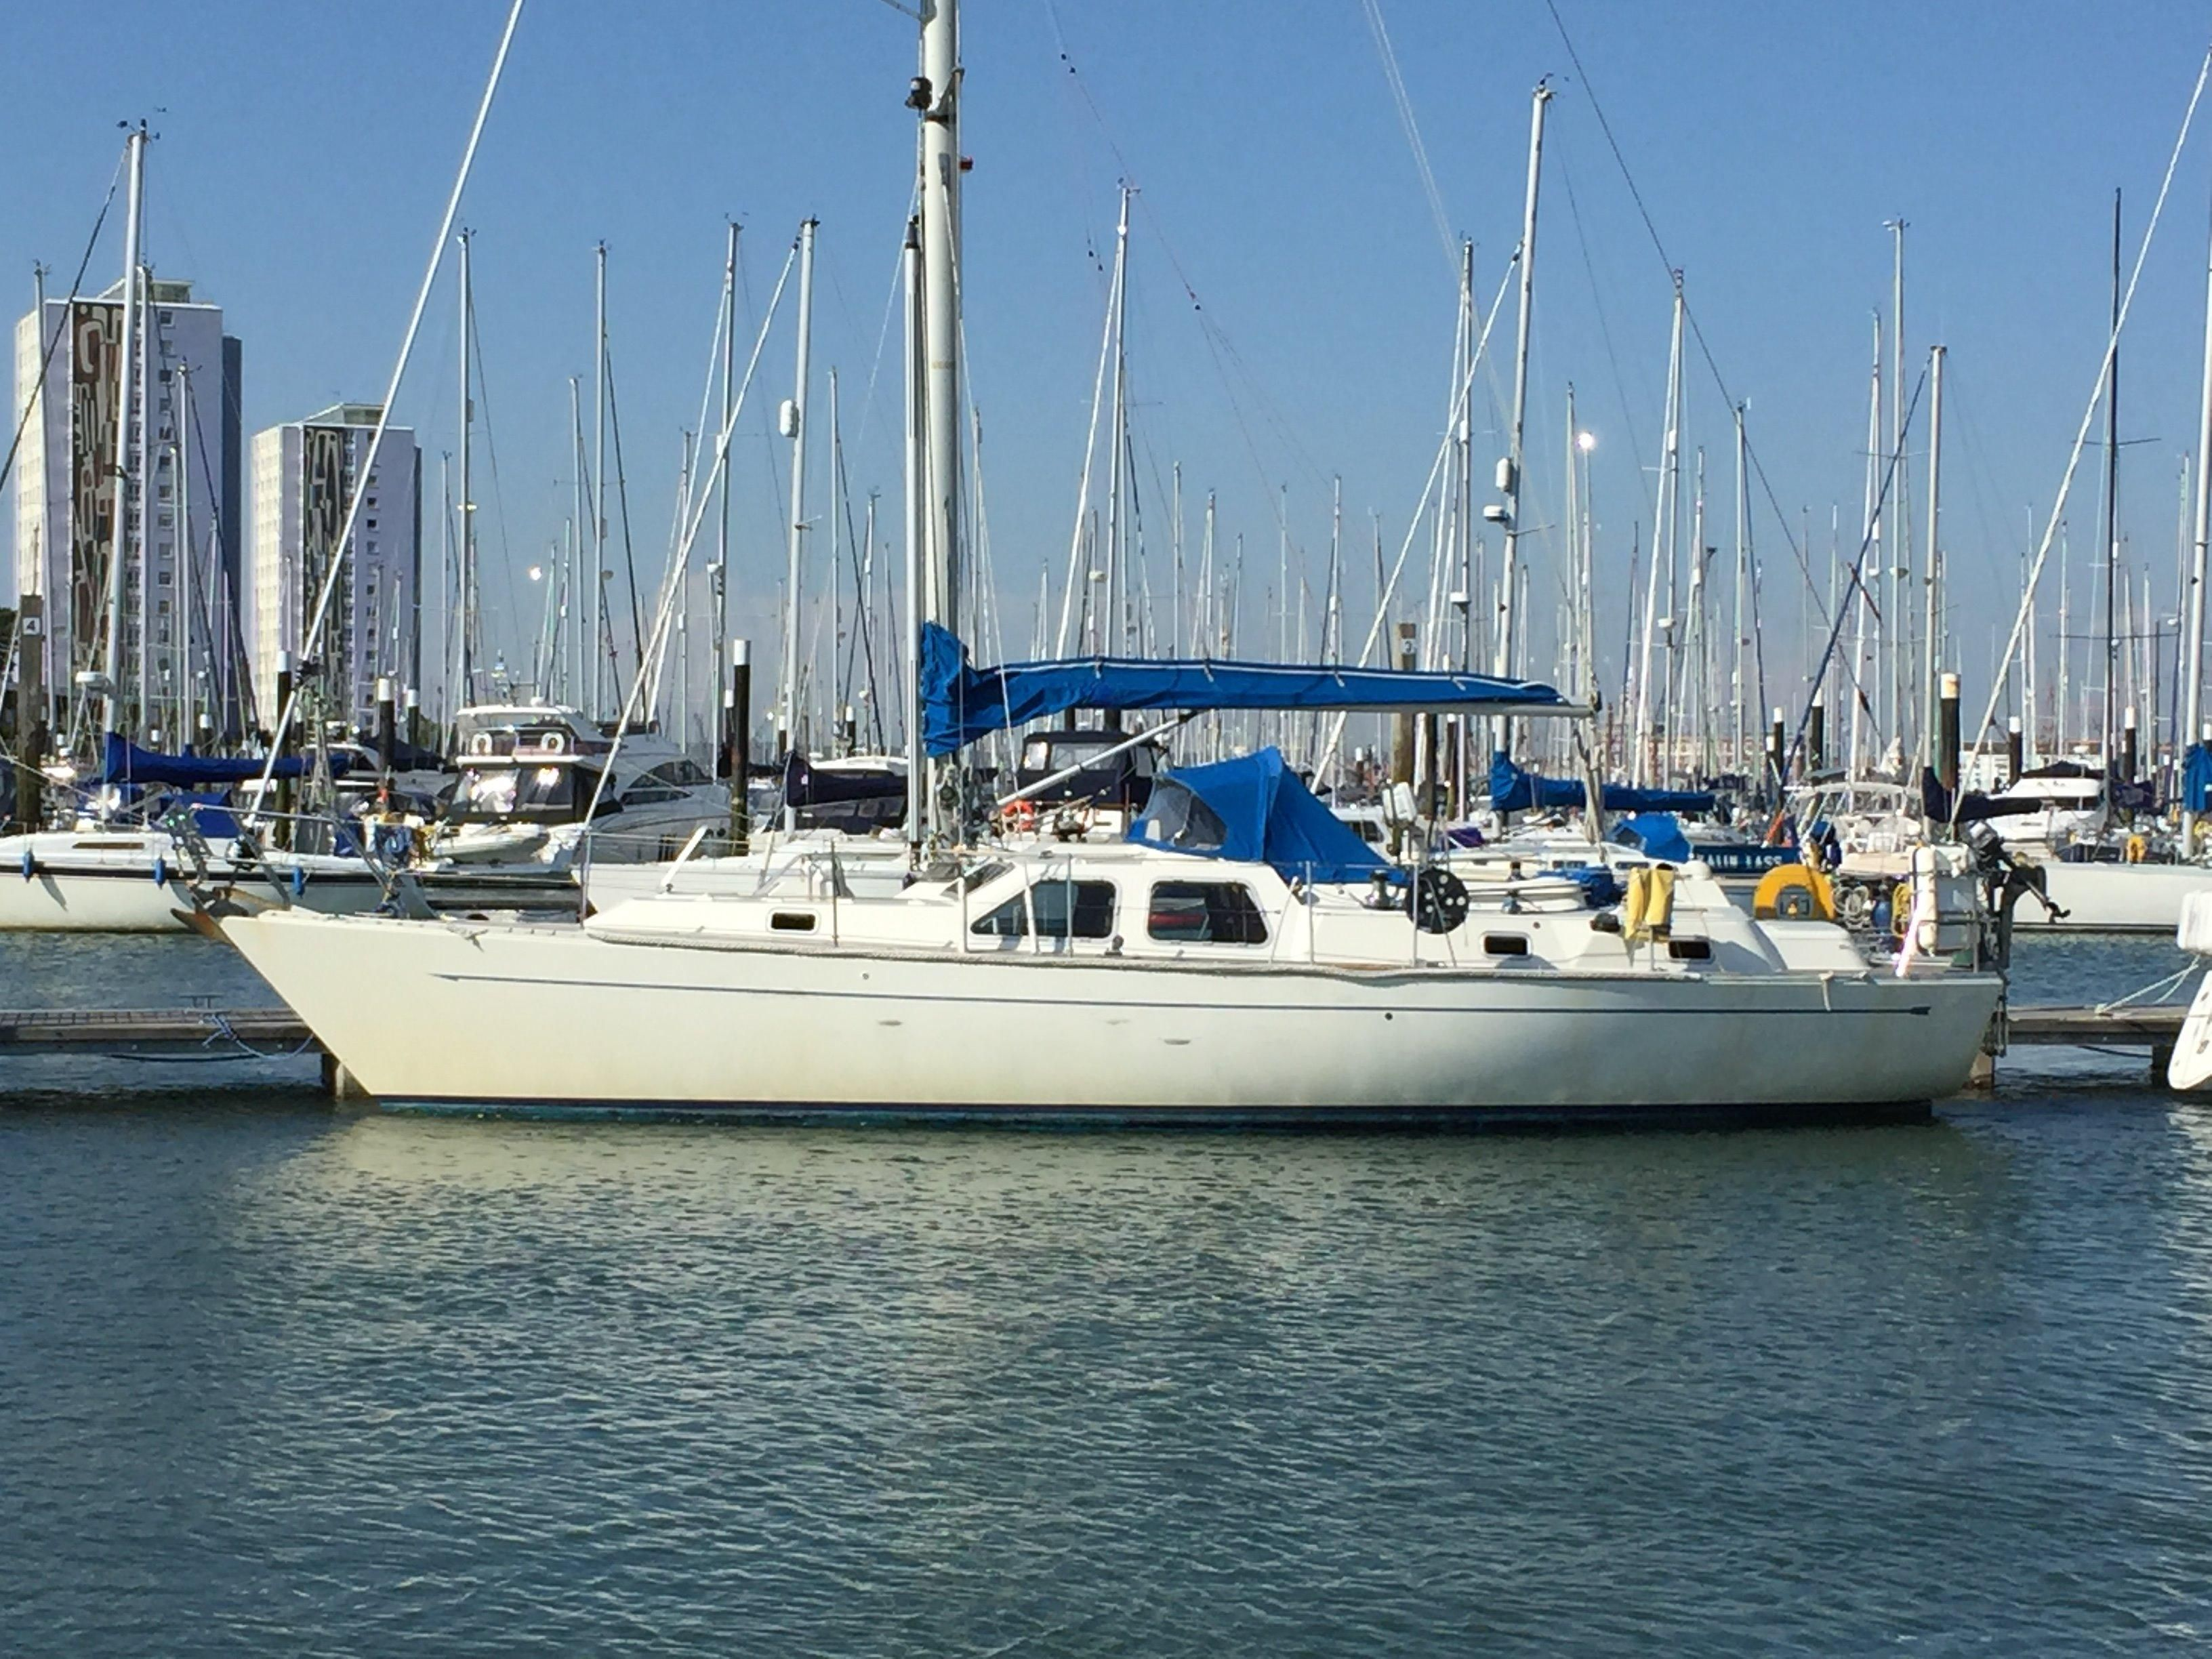 Gosport United Kingdom  City new picture : 1988 Oyster 406 Deck Saloon Sail Boat For Sale www.yachtworld.com